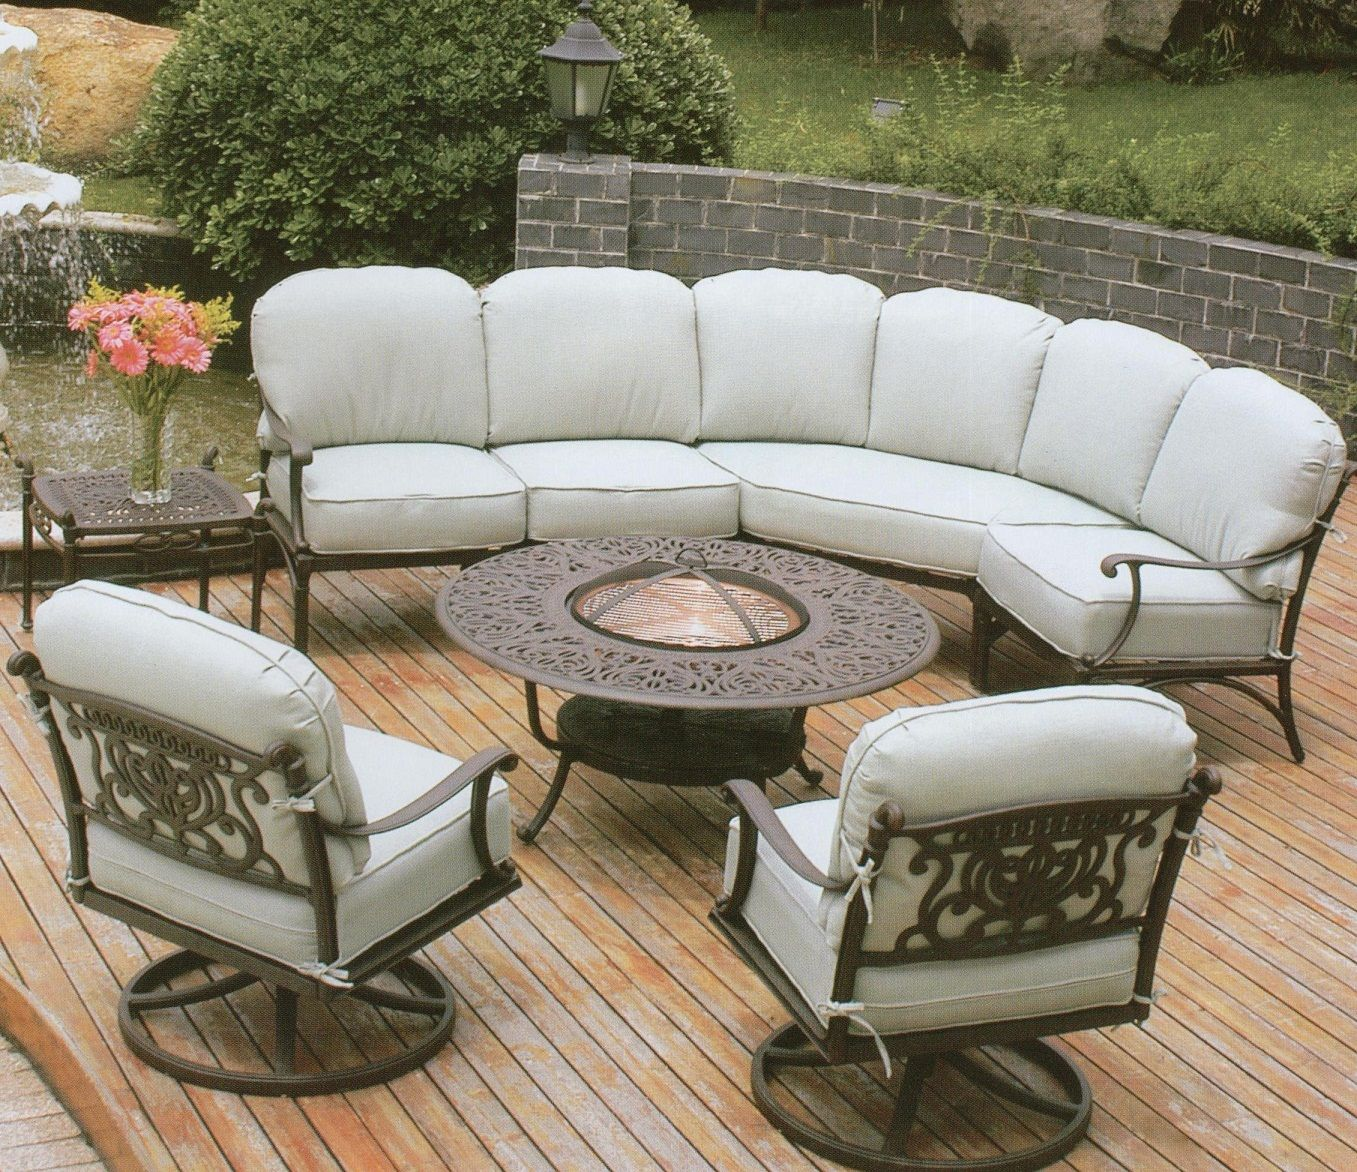 patio furniture | sears patio furniture clearance sale ...